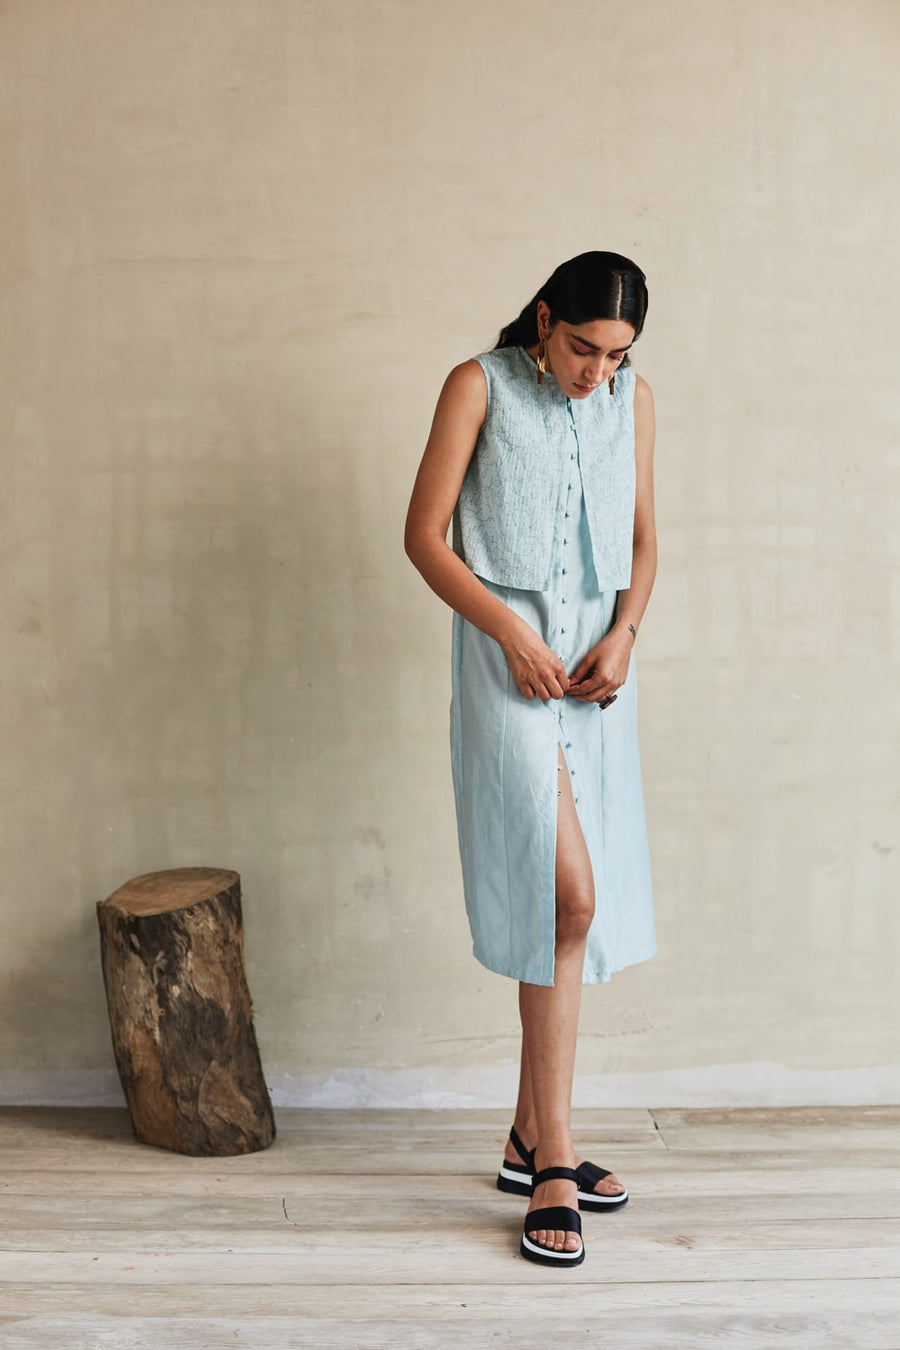 Layers Of Sky Tunic - Ethical made fashion - onlyethikal